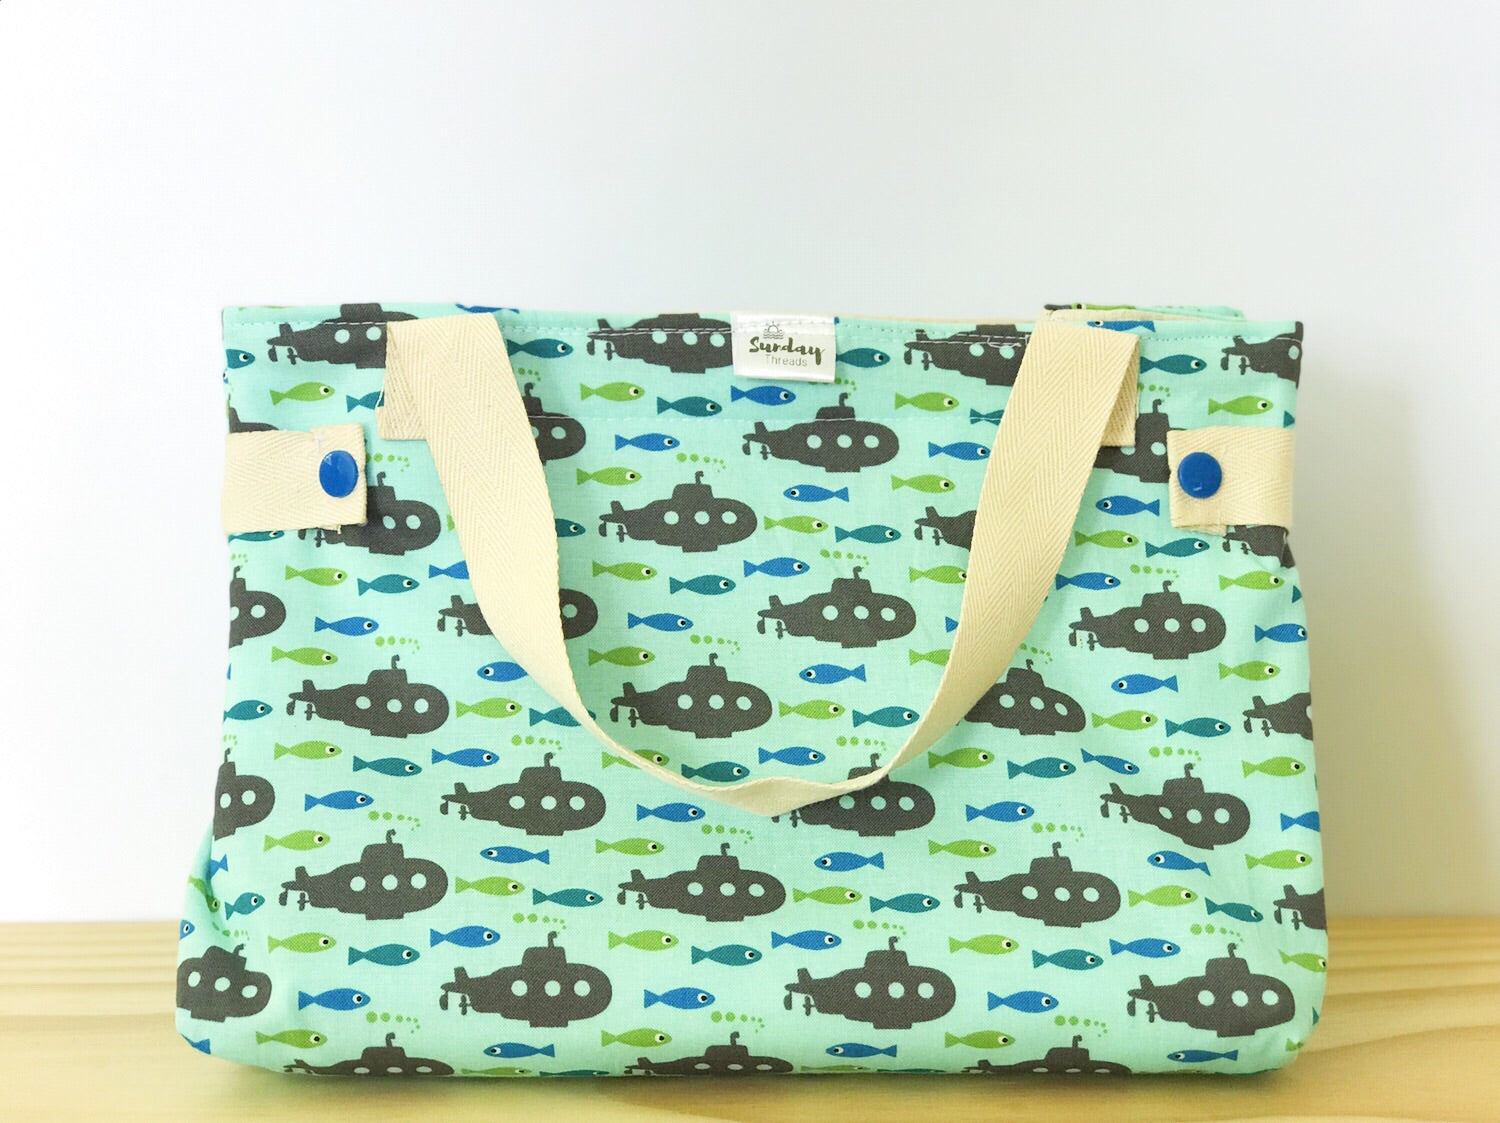 Handmade Lunch Bag - underwater adventures